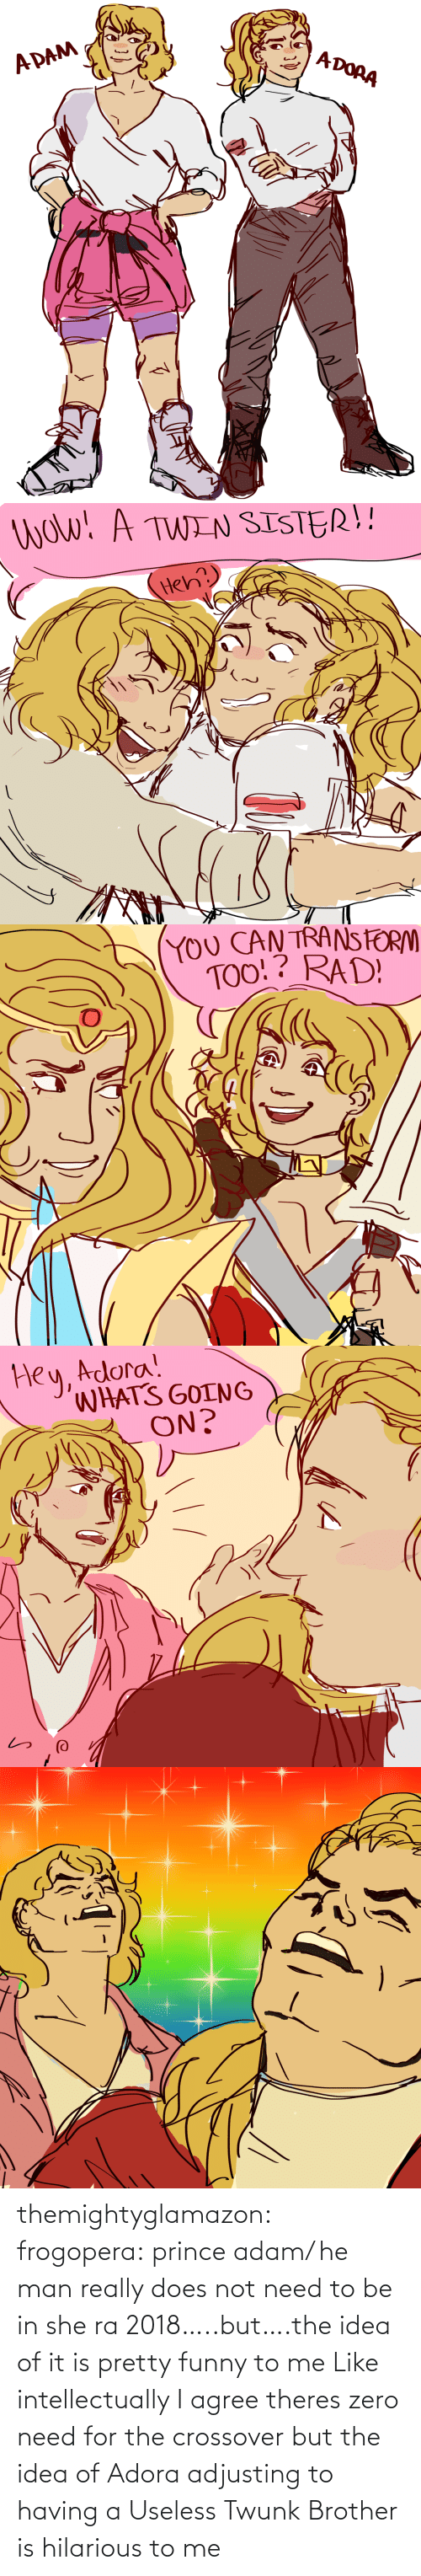 adam: themightyglamazon: frogopera: prince adam/ he man really does not need to be in she ra 2018…..but….the idea of it is pretty funny to me   Like intellectually I agree theres zero need for the crossover but the idea of Adora adjusting to having a Useless Twunk Brother is hilarious to me